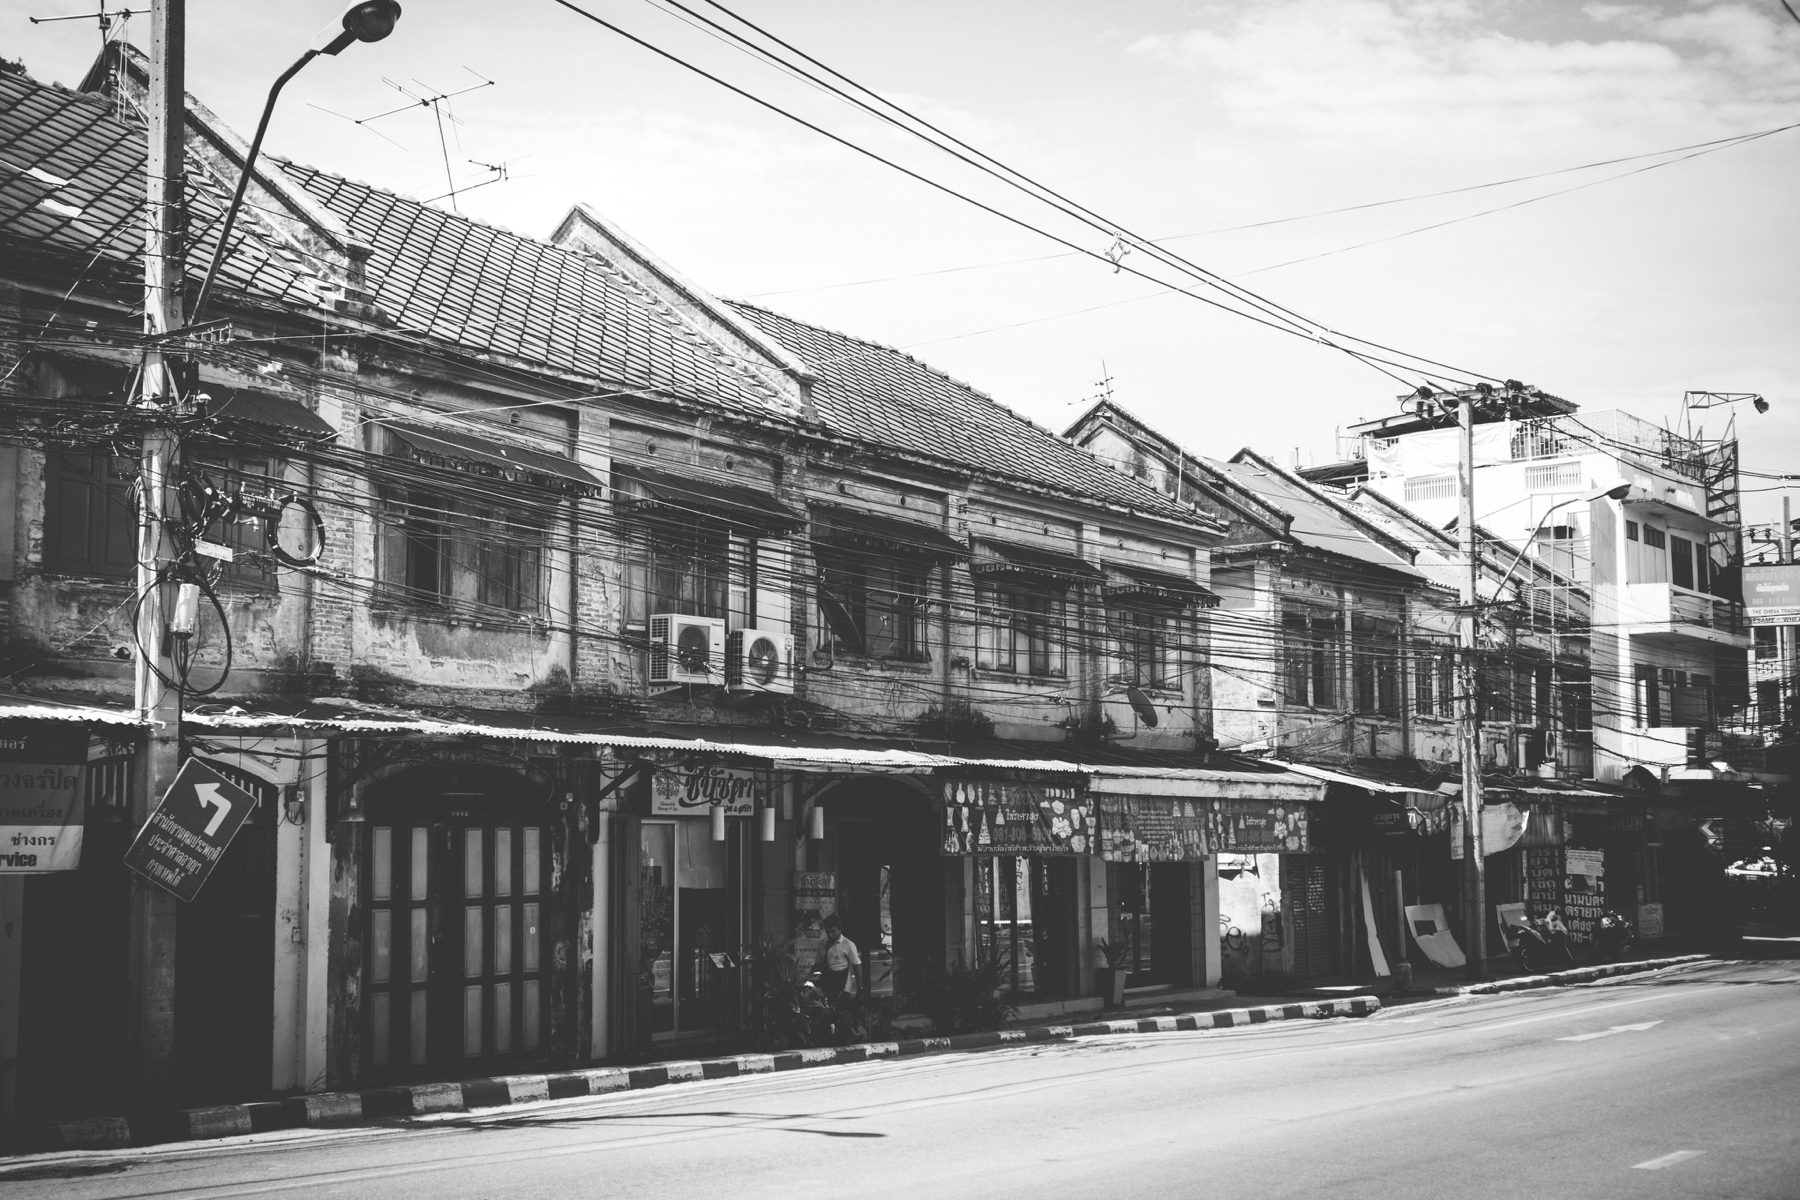 Brandon_Kari_Thailand_Honeymoon_Lifestyle_Street_Photography_0044.jpg